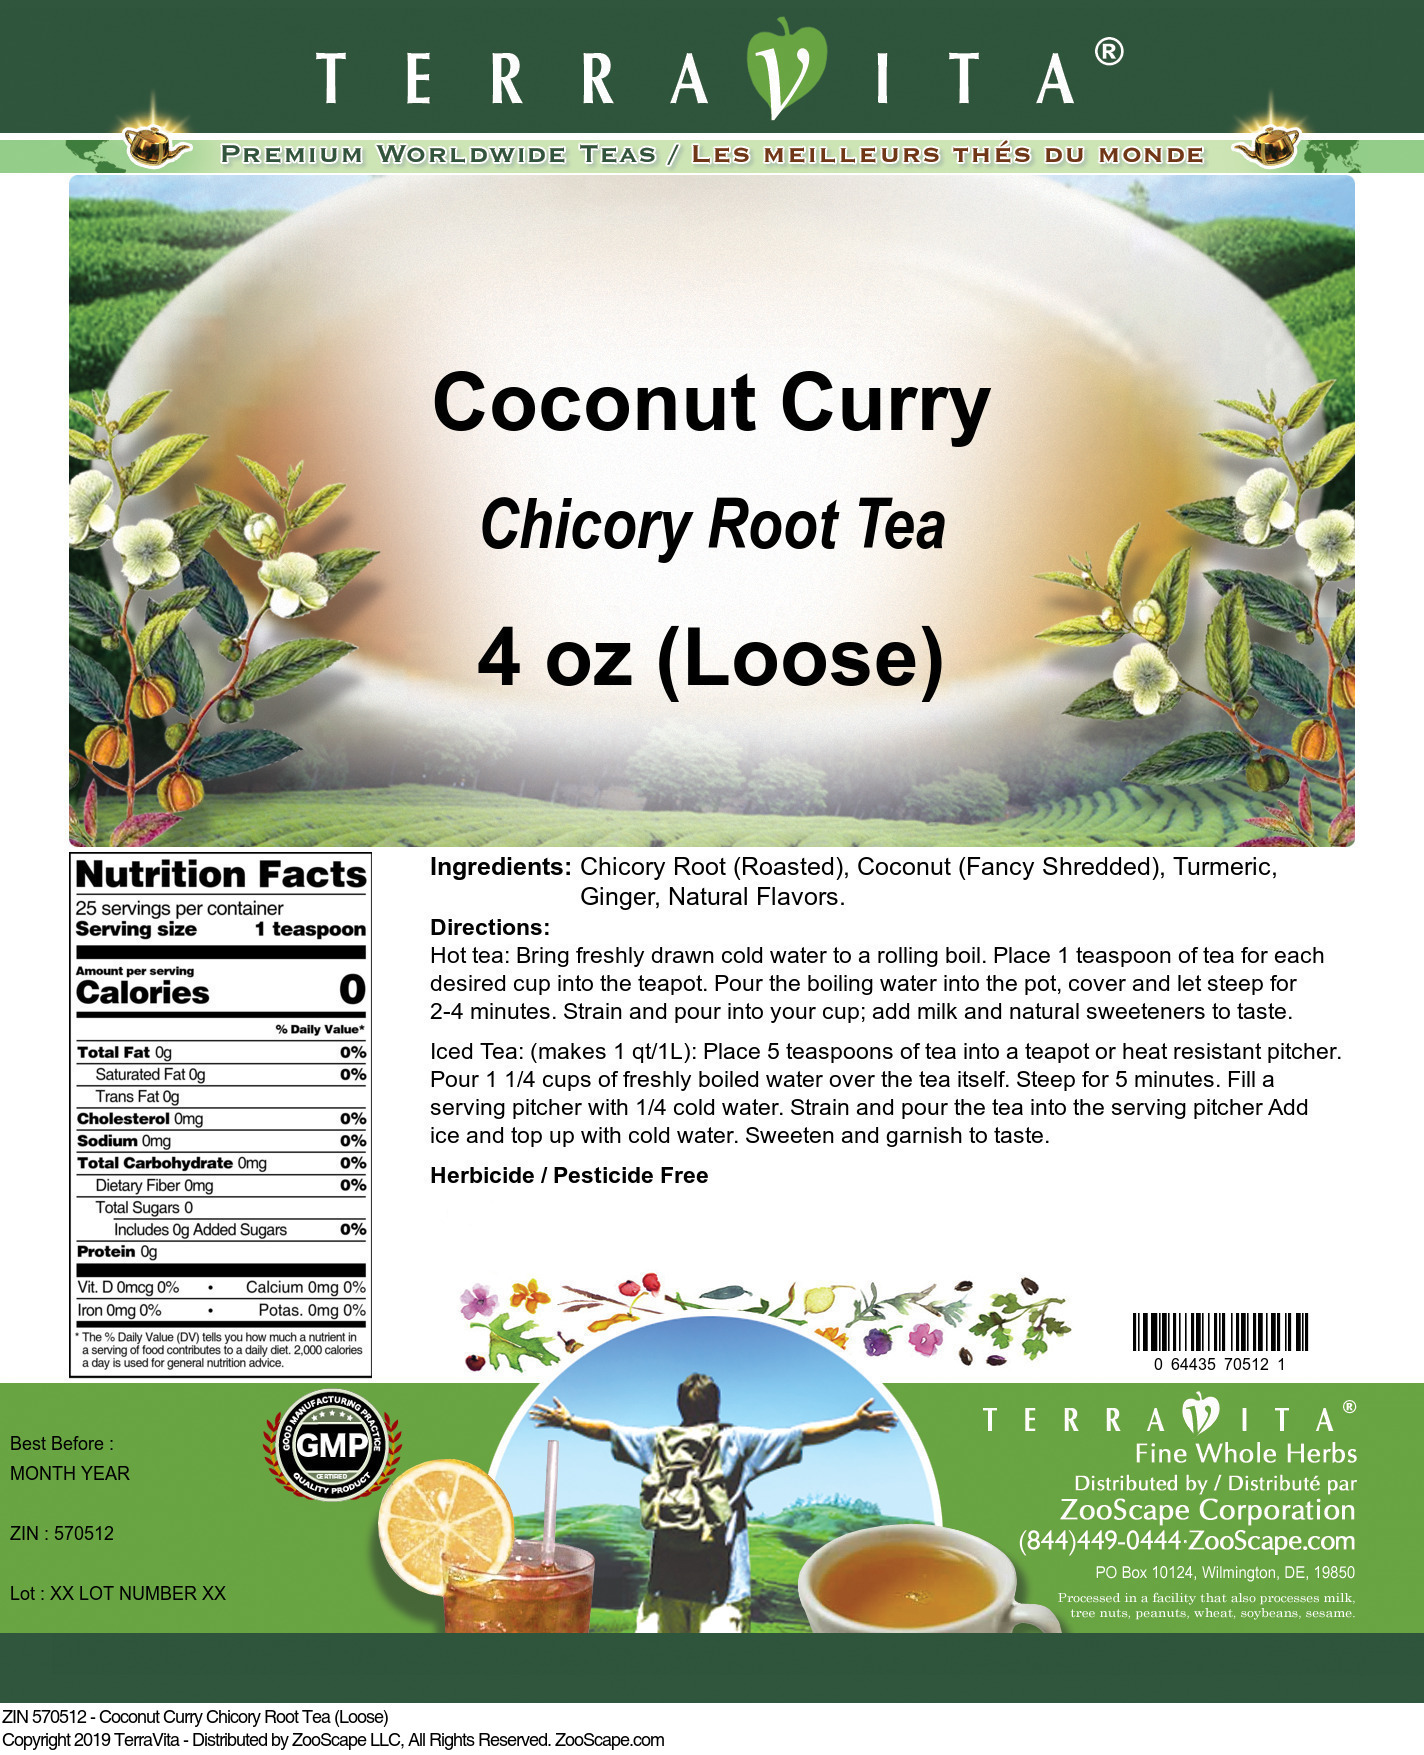 Coconut Curry Chicory Root